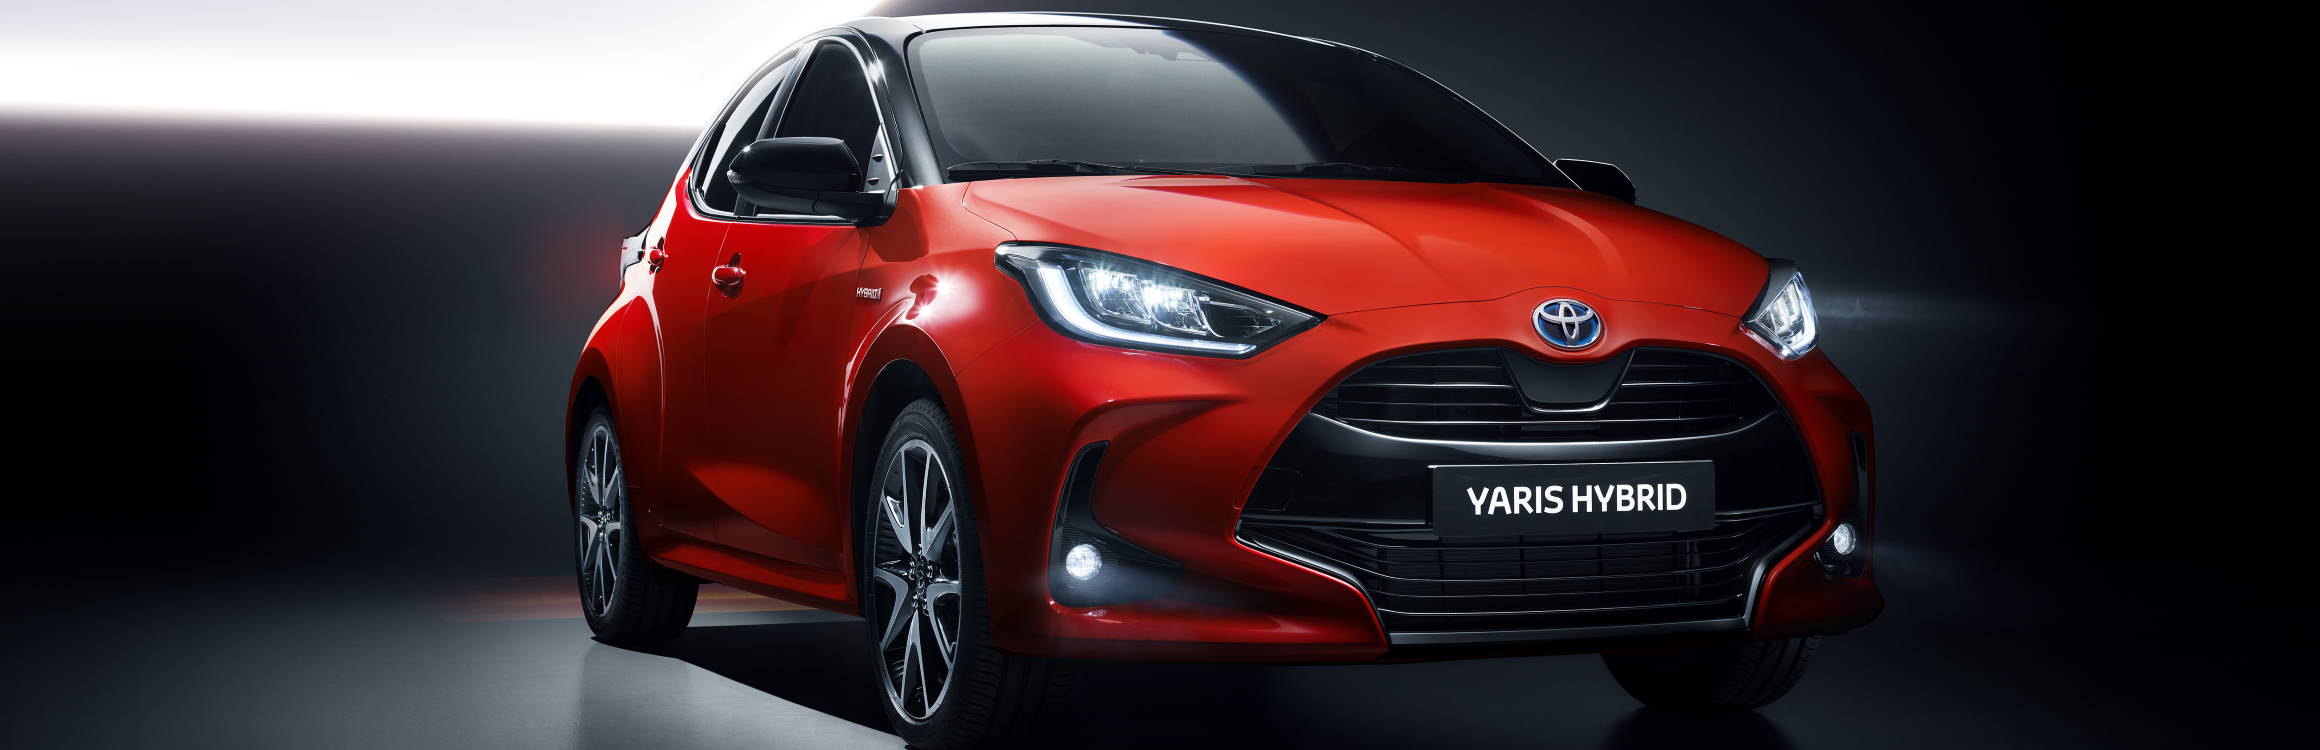 roter Toyota Yaris 3/4 Frontansicht